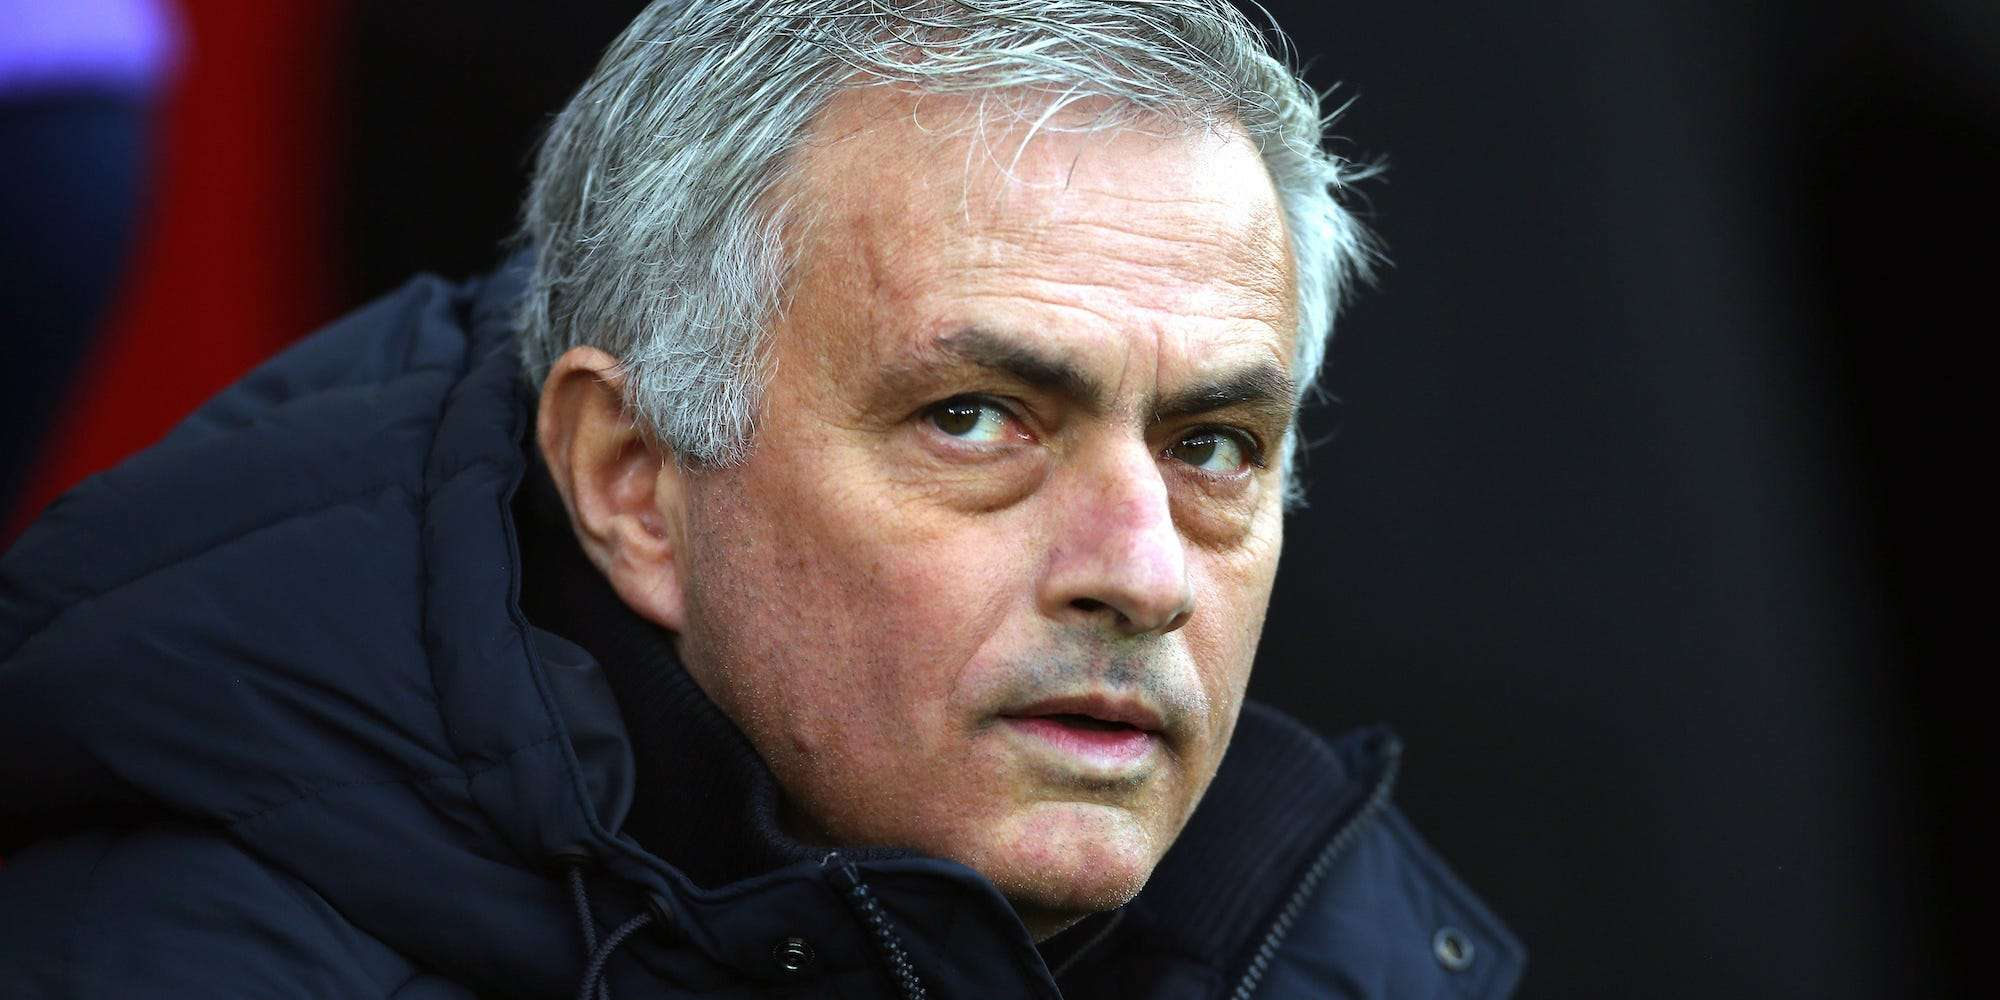 Jose Mourinho has been sacked as Tottenham Hotspur manager ...